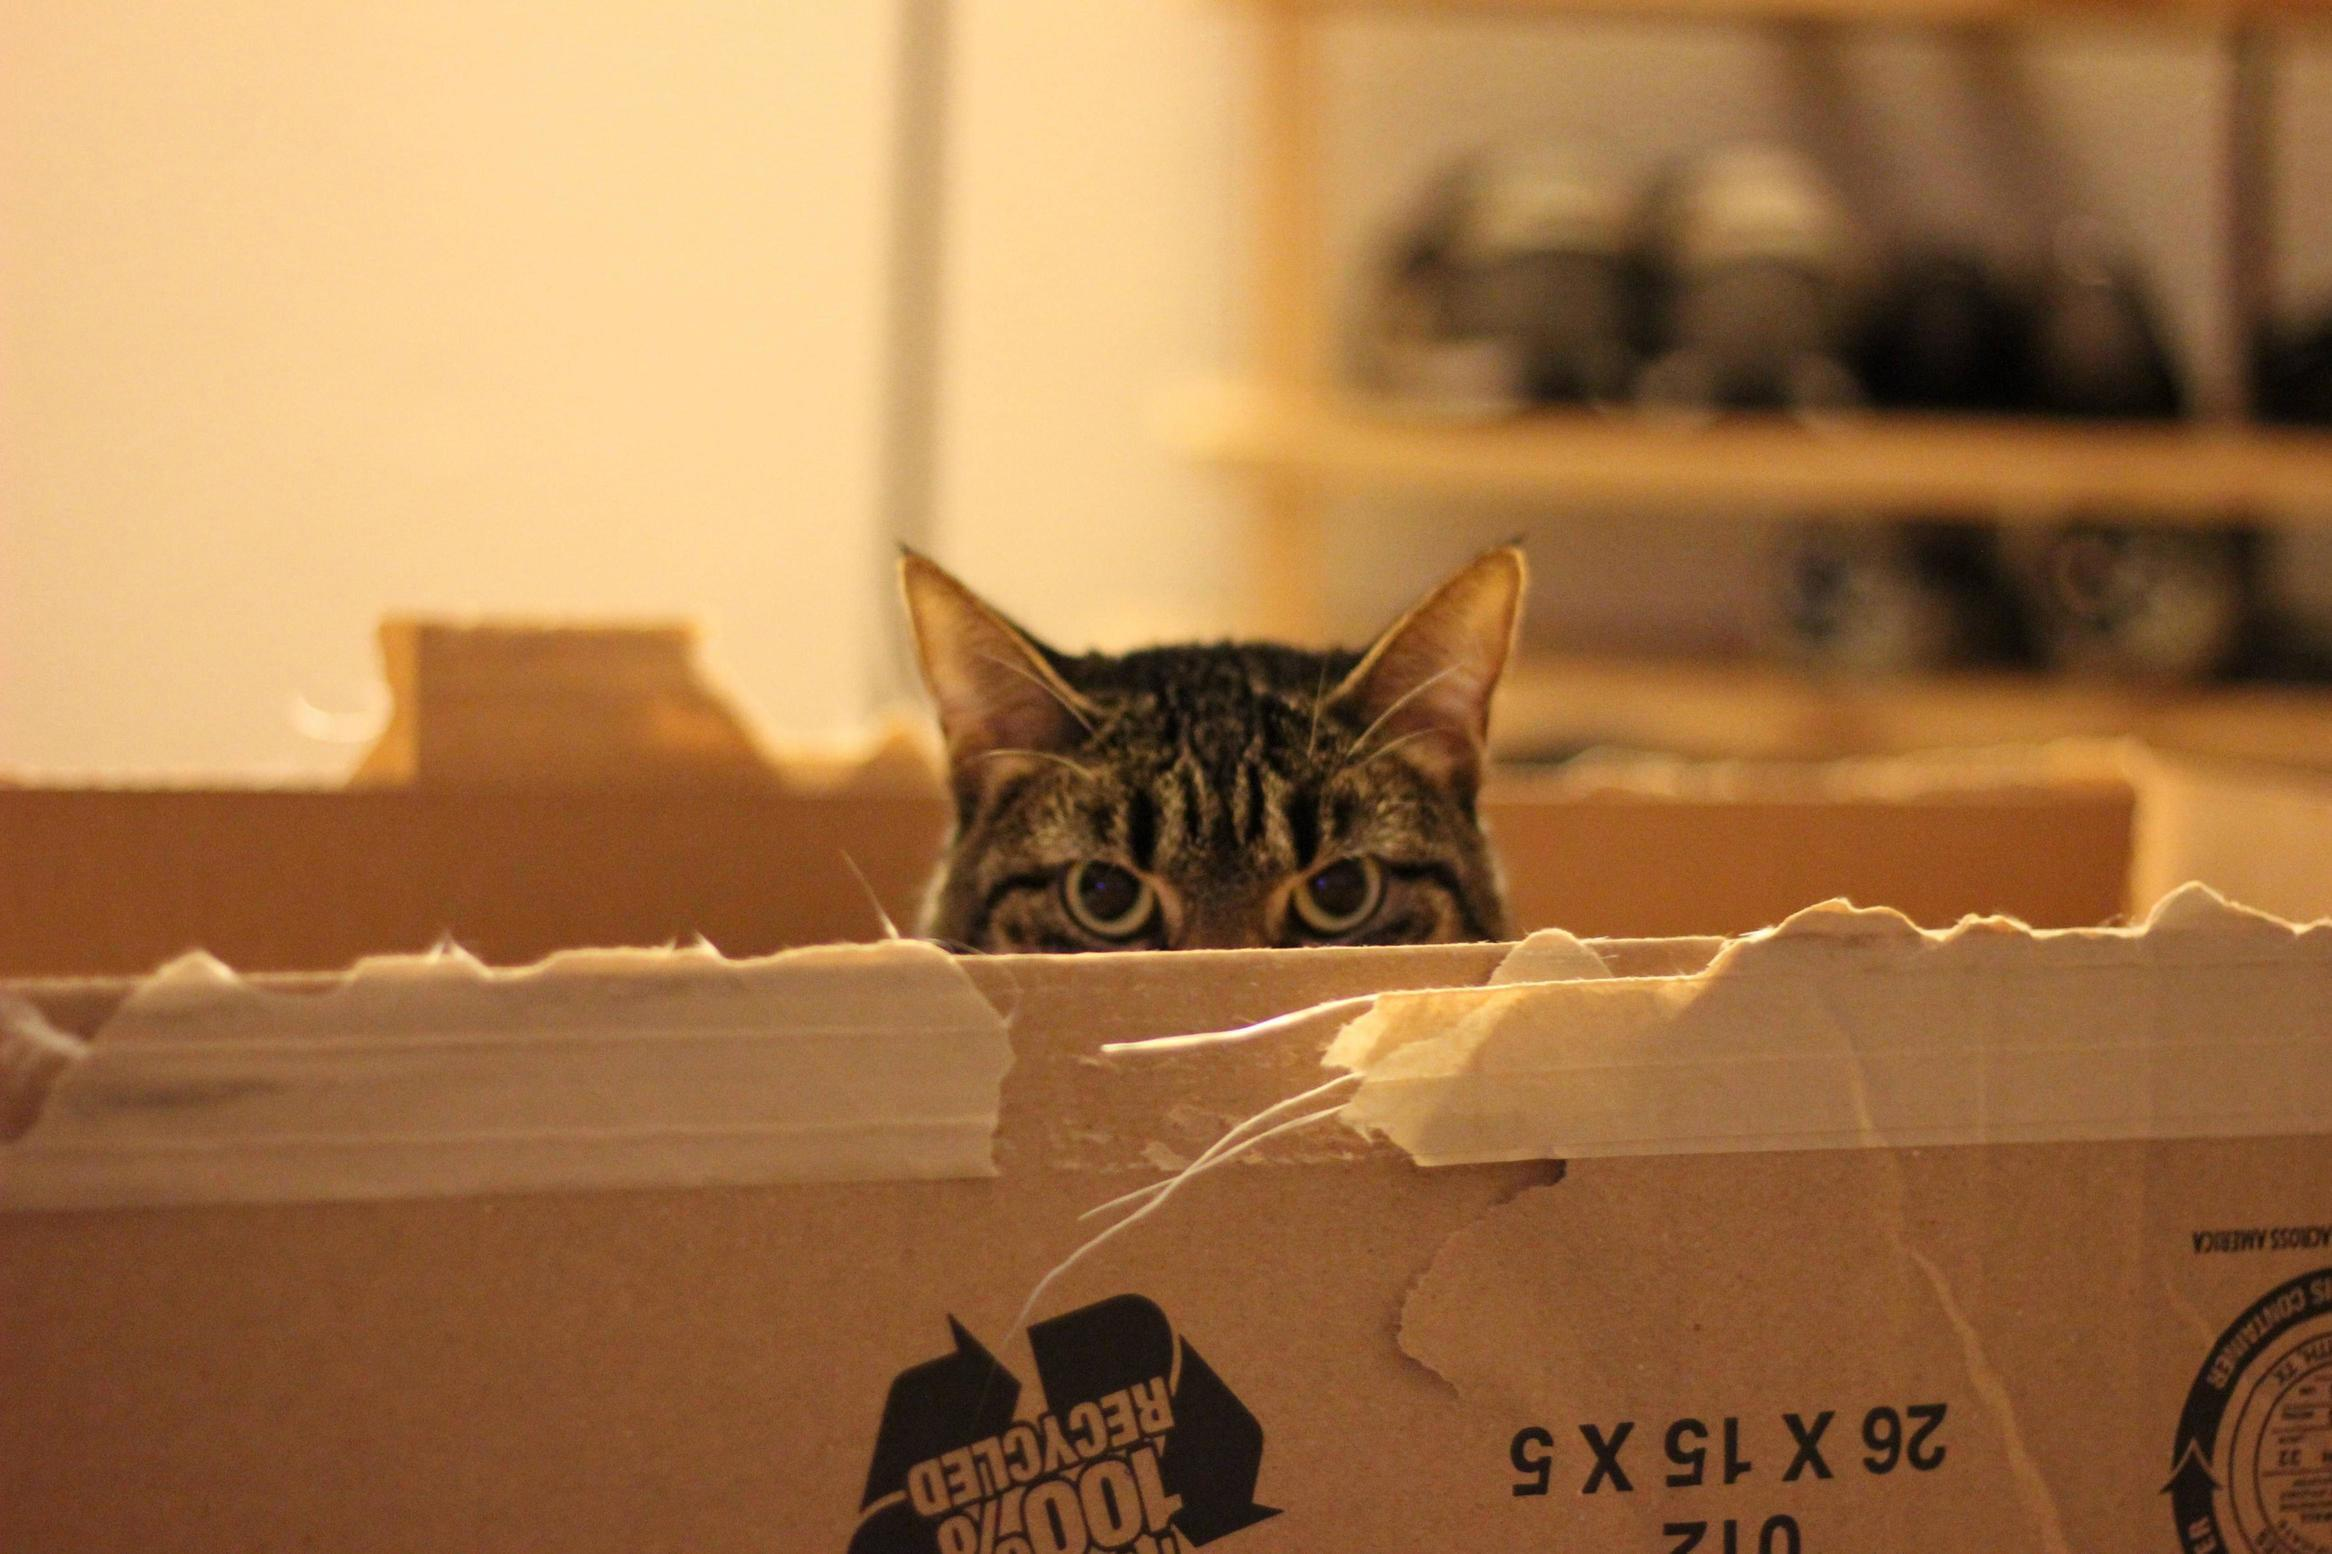 Leave the box and go….